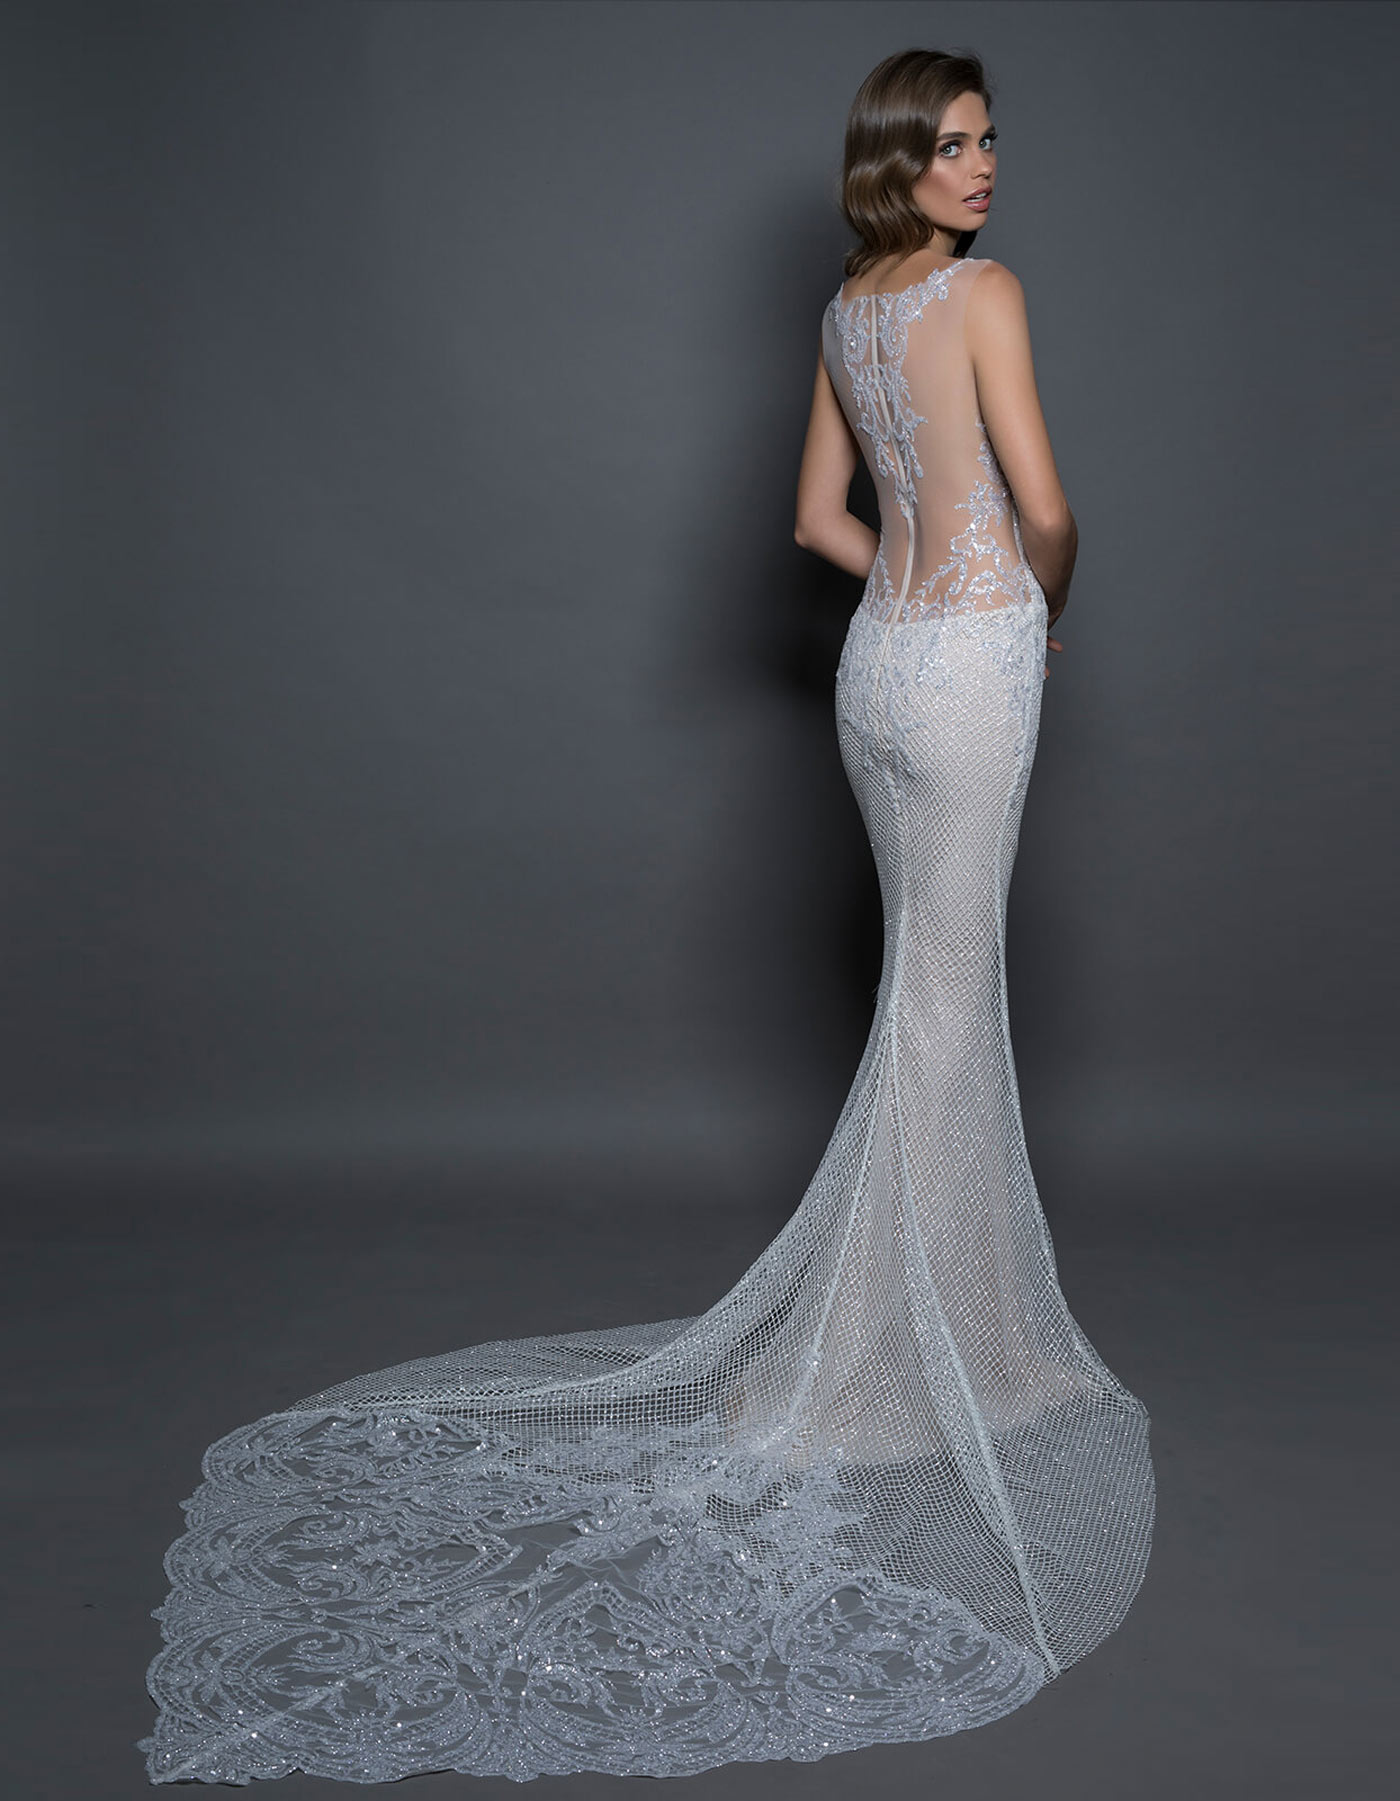 Glitter Mermaid Wedding Dress 14585 By Pnina Tornai Love